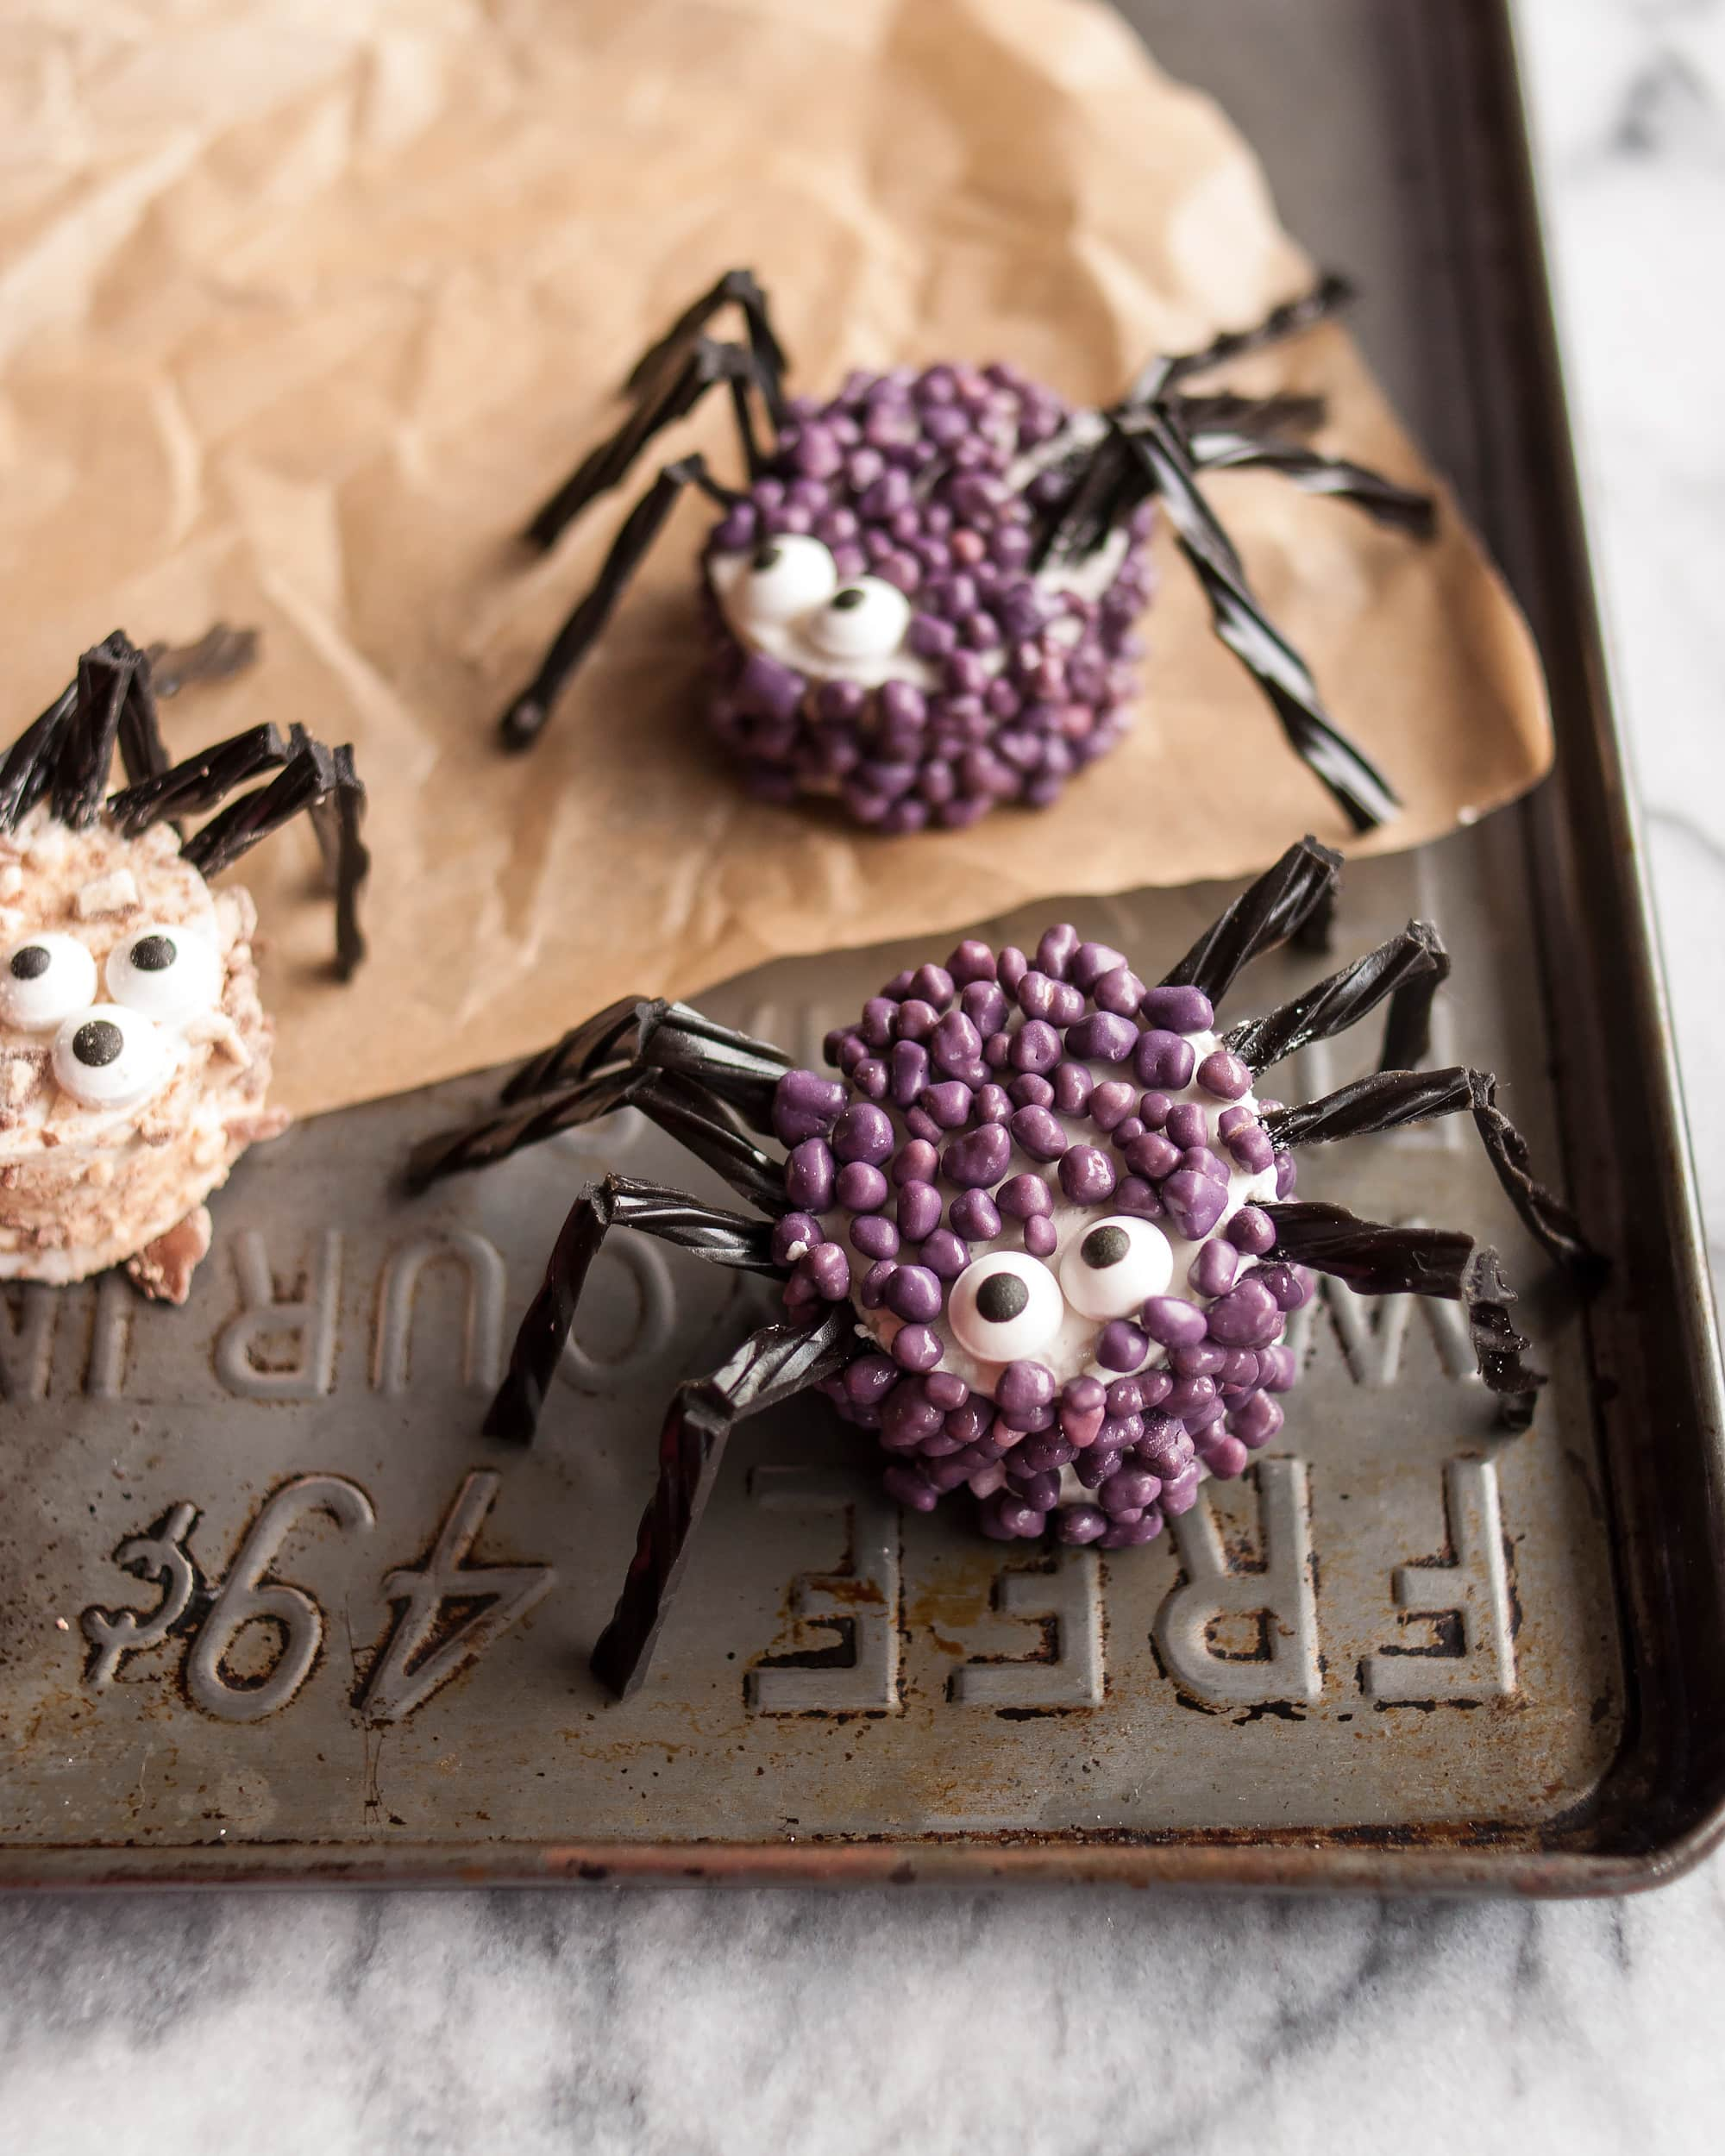 5 Nut-Free Halloween Treats Your Kids Will Love: gallery image 1